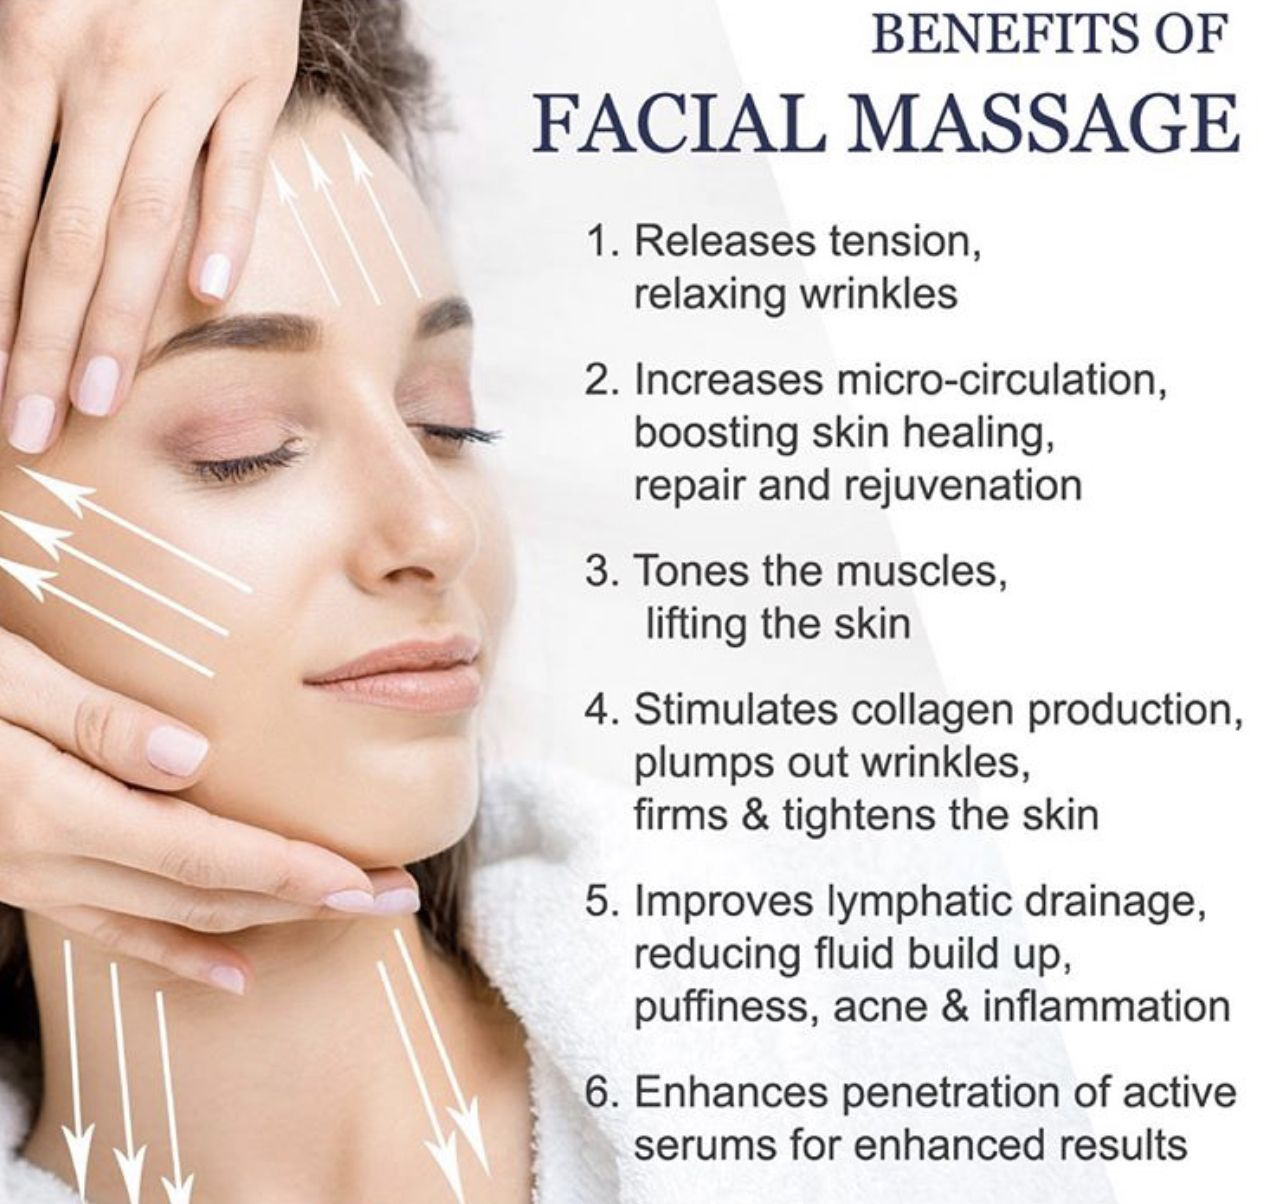 Benefits Of Facial Massages Facial Massage Benefits Facial Massage Facial Massage Roller